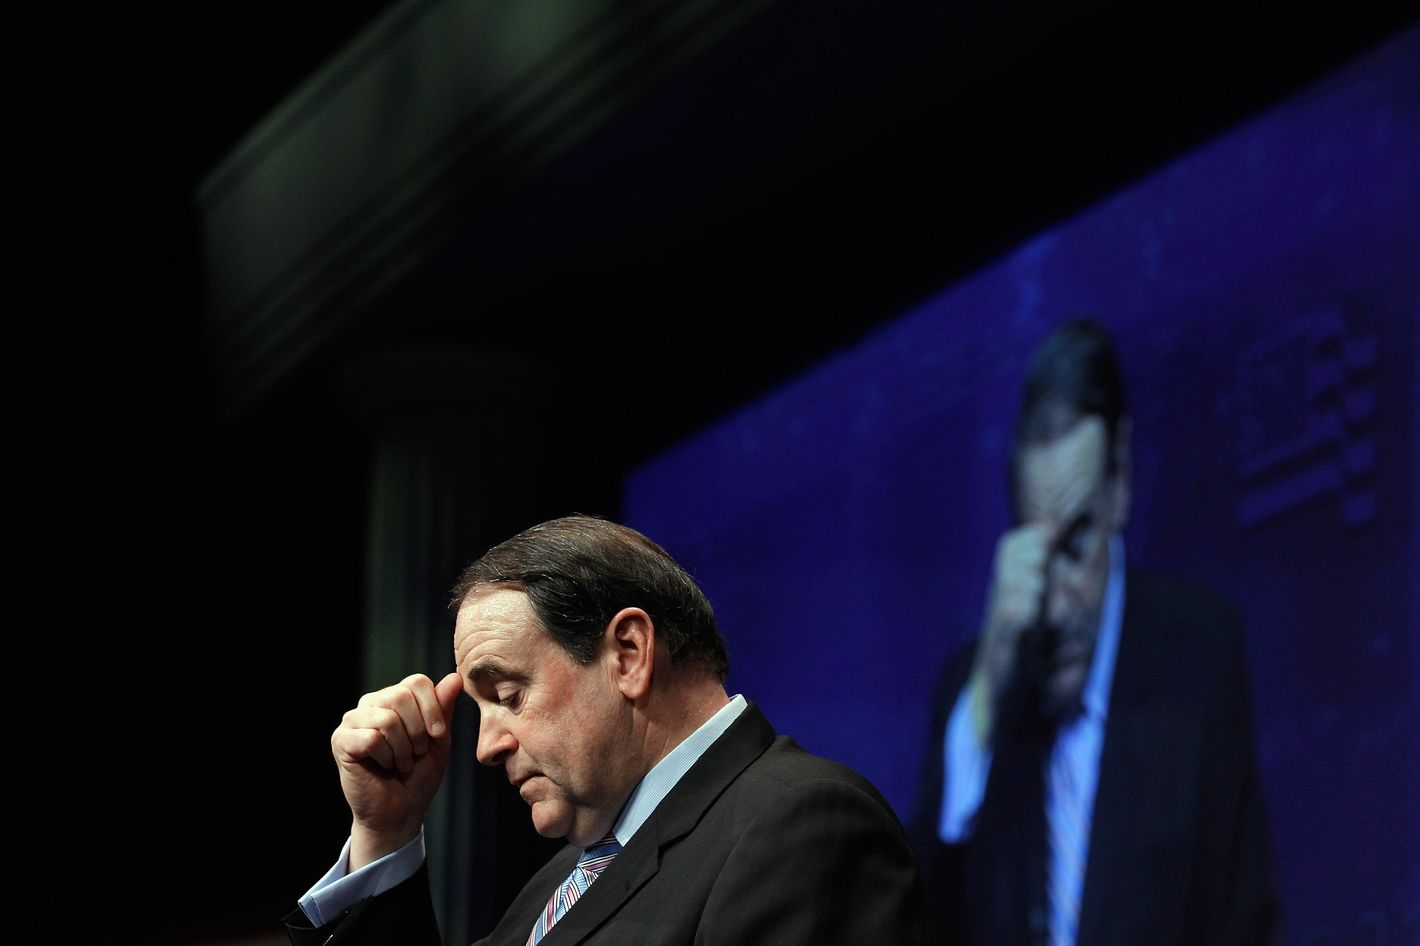 WASHINGTON, DC - FEBRUARY 10:  Former Arkansas Governor Mike Huckabee delivers remarks to the Conservative Political Action Conference (CPAC) at the Marriott Wardman Park February 10, 2012 in Washington, DC. Thousands of conservative activists are attending the annual gathering in the nation's capital.  (Photo by Chip Somodevilla/Getty Images)